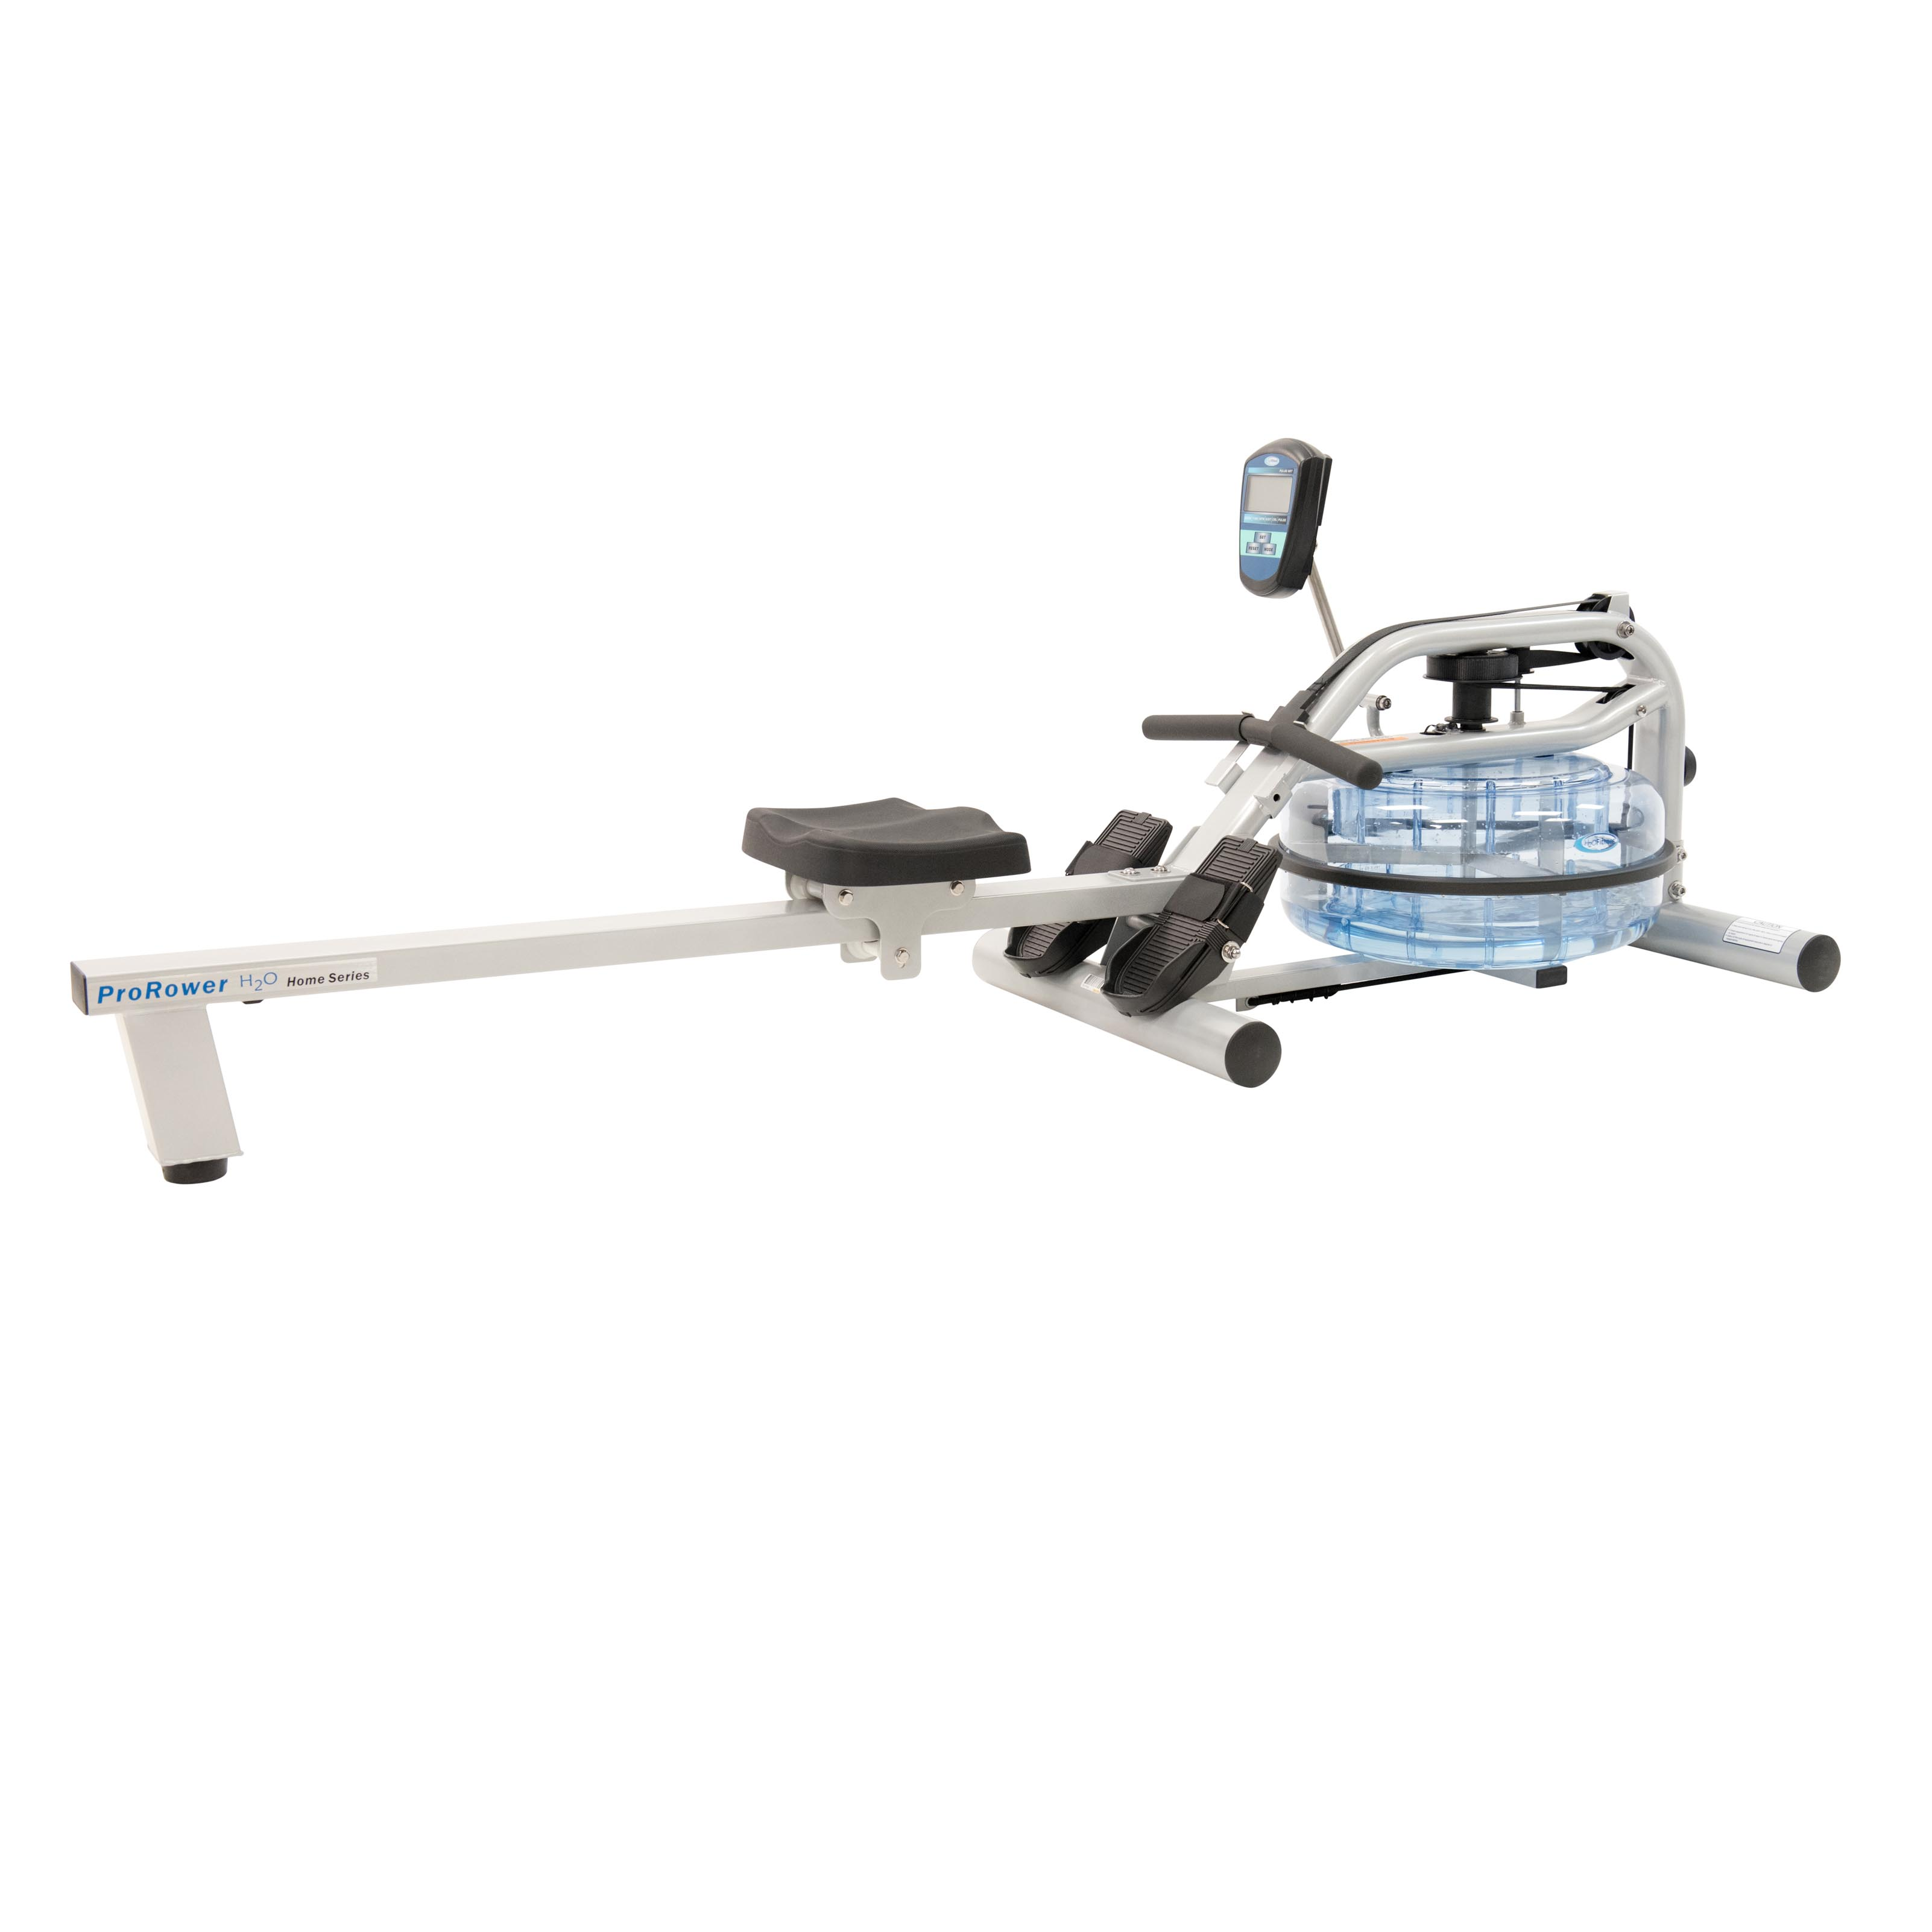 RX-750 Waterrower why buy used or rent at this price?!